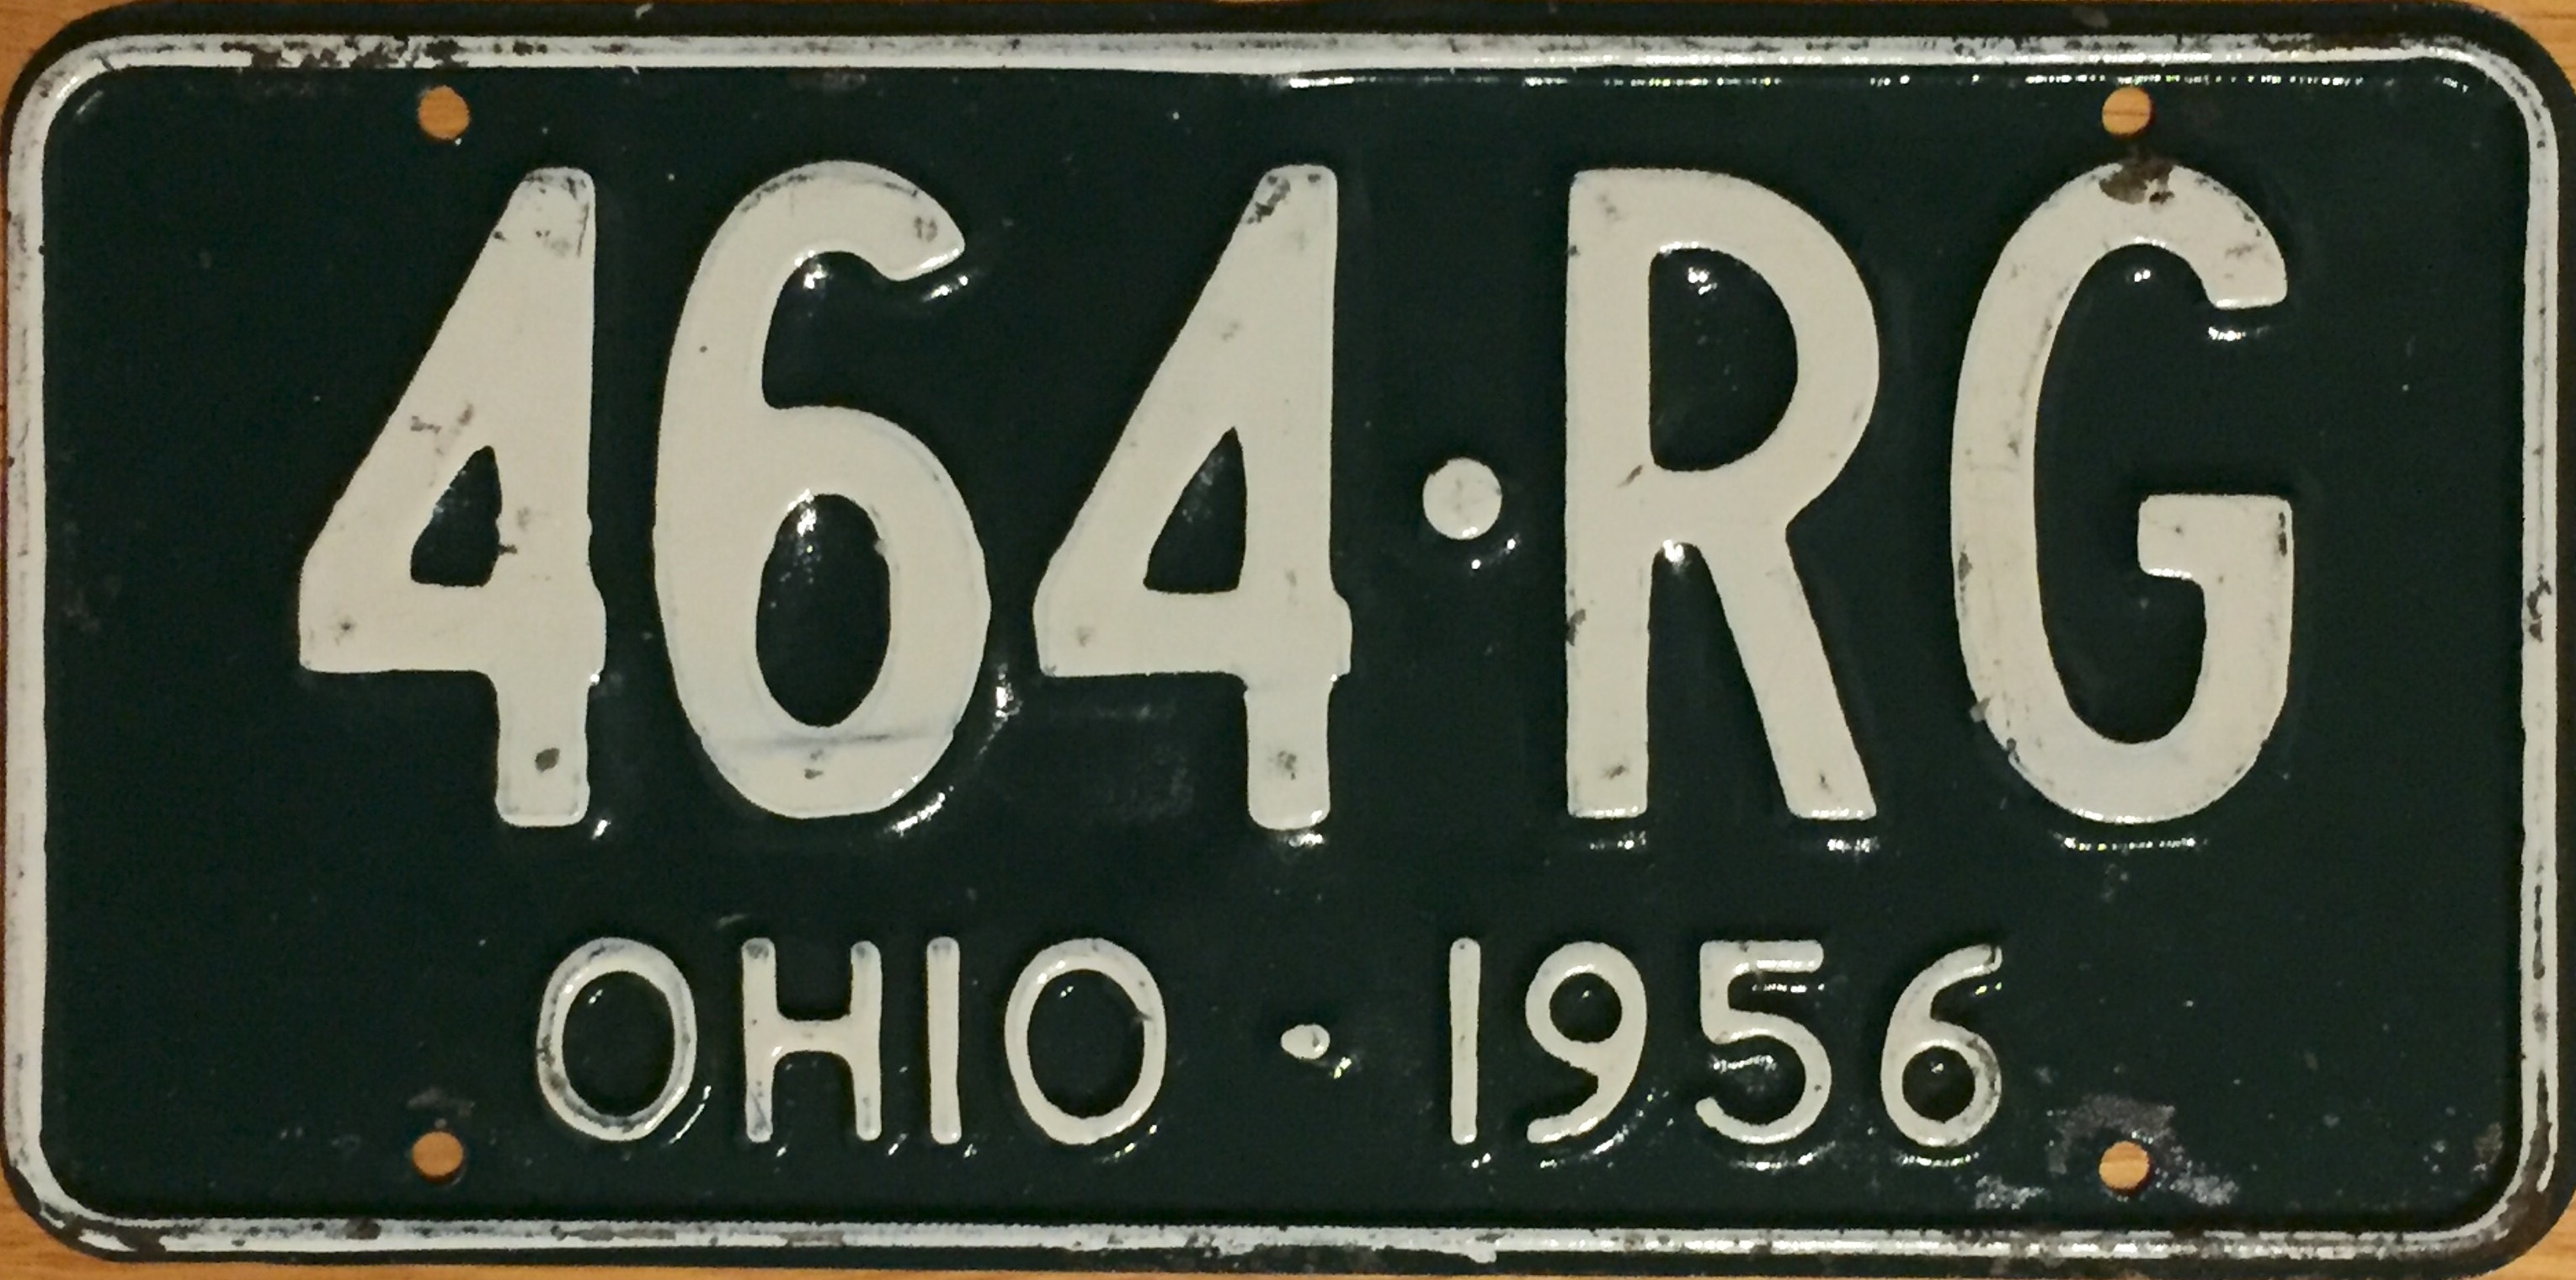 File:1956 Ohio license plate.jpg - Wikimedia Commons